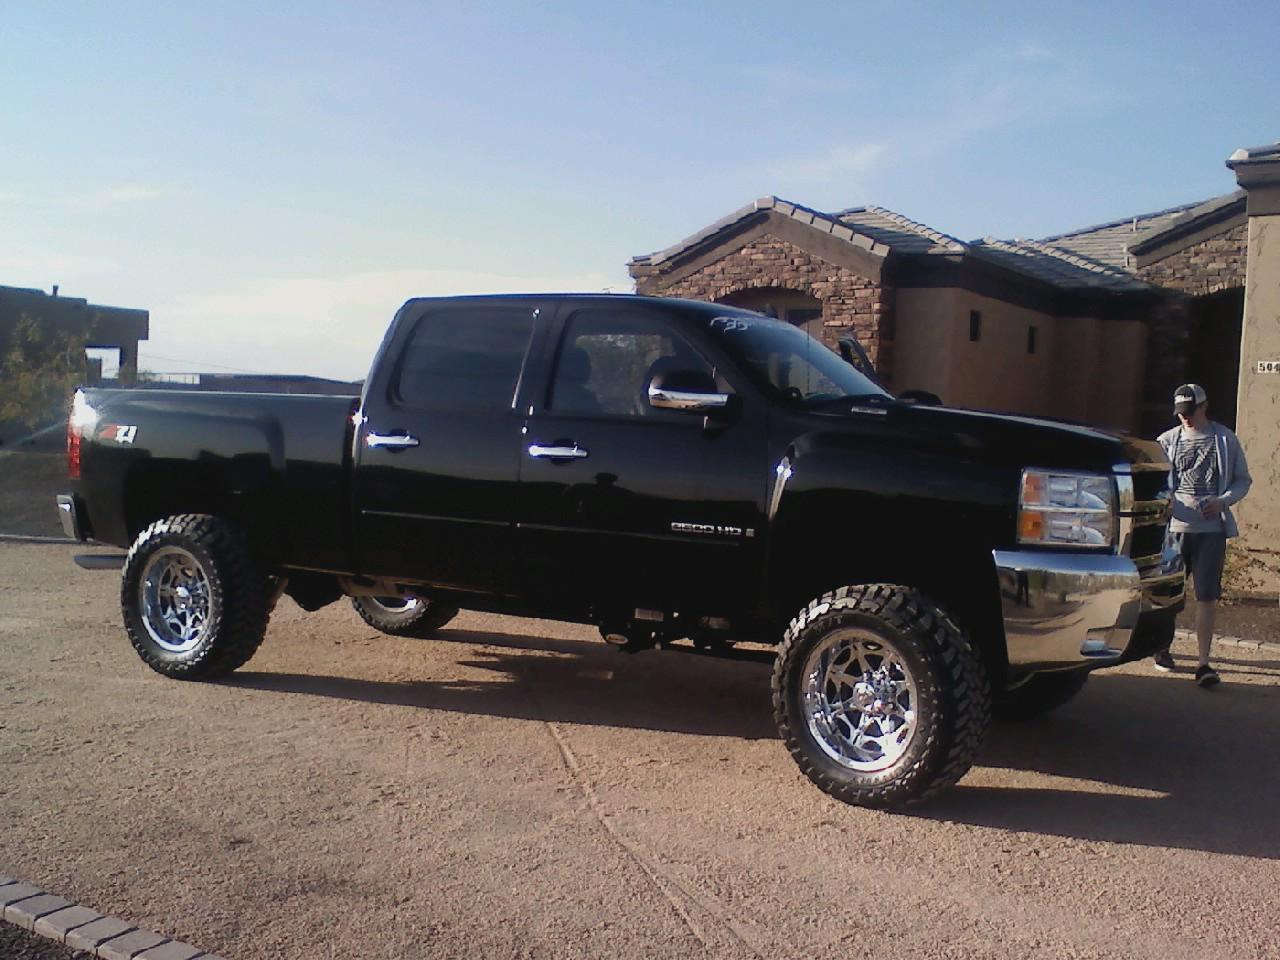 kinger1421 39 s 2007 chevrolet silverado 2500 hd crew cab in the ville ca. Black Bedroom Furniture Sets. Home Design Ideas